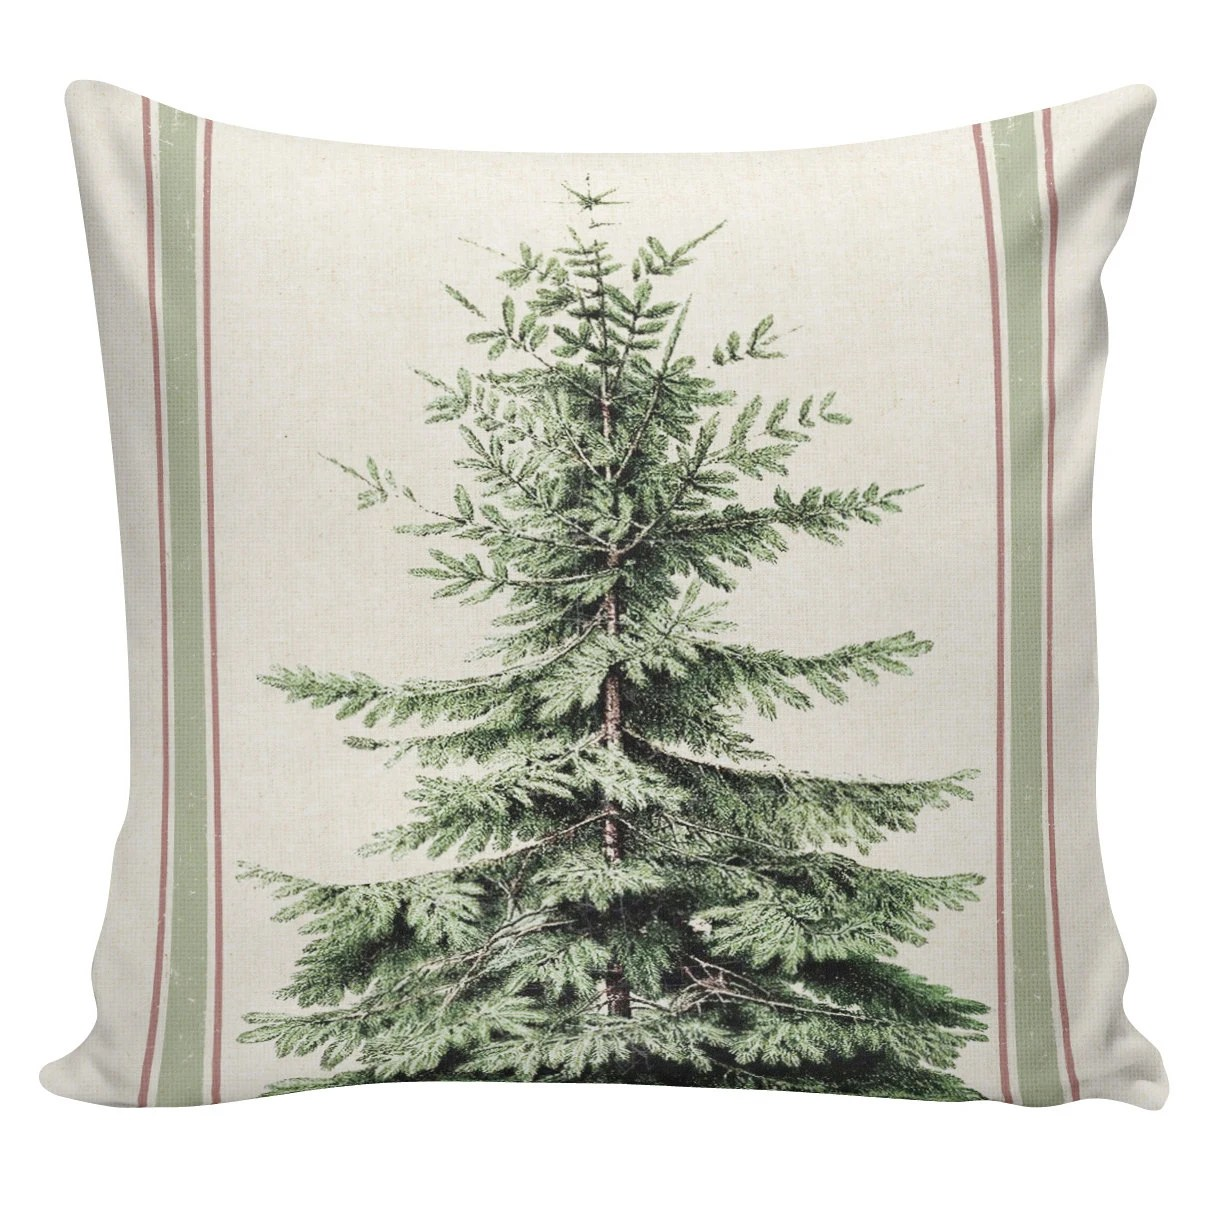 Cushion Covers Christmas Cushion Cover Christmas Pillows Christmas By